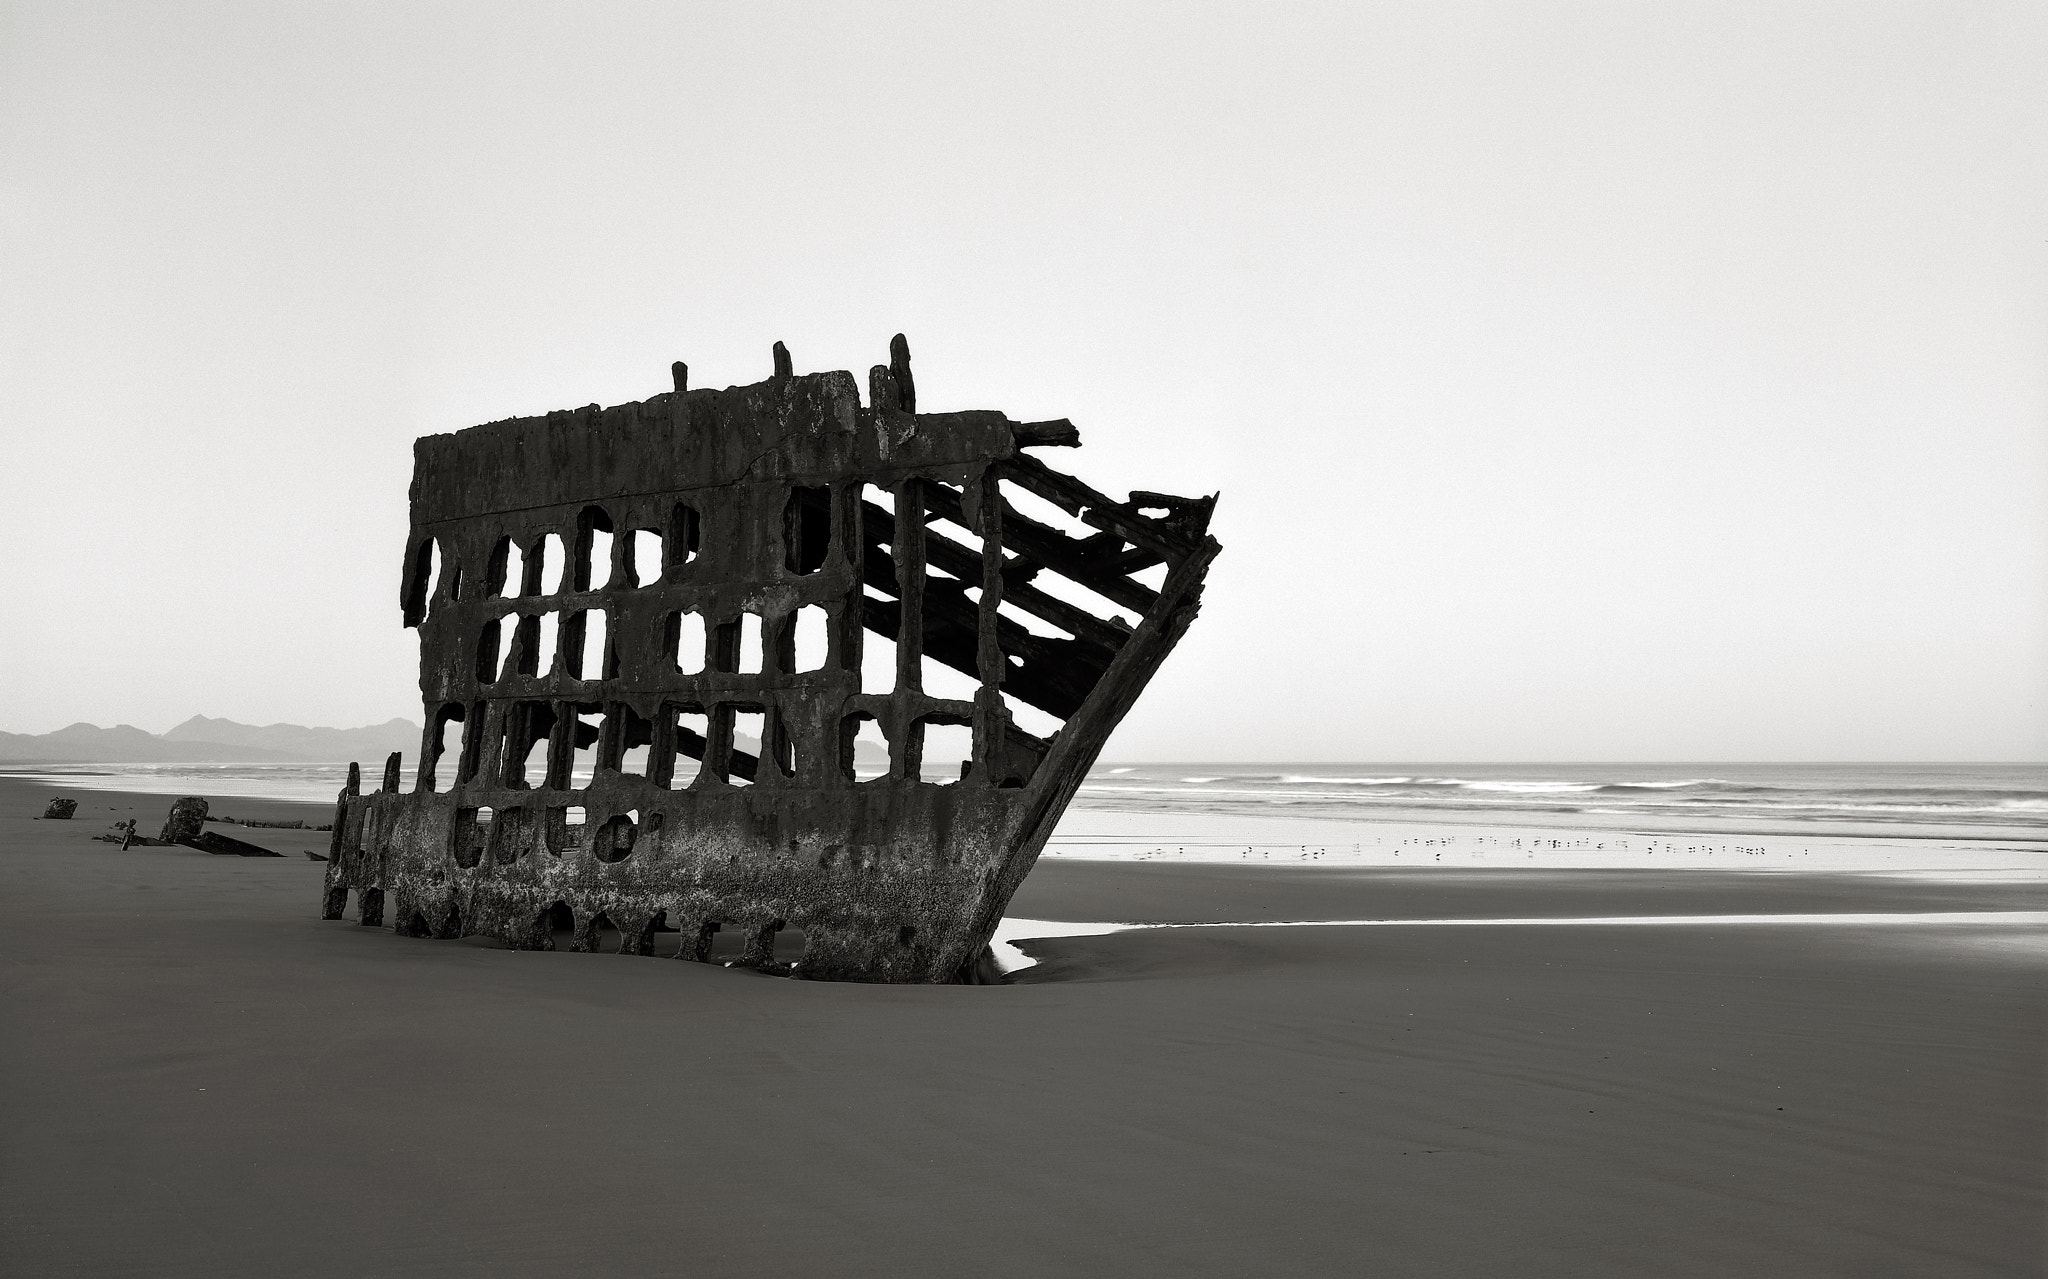 Photograph The Wreck of the Peter Iredale, Oregon Coast by Austin Granger on 500px